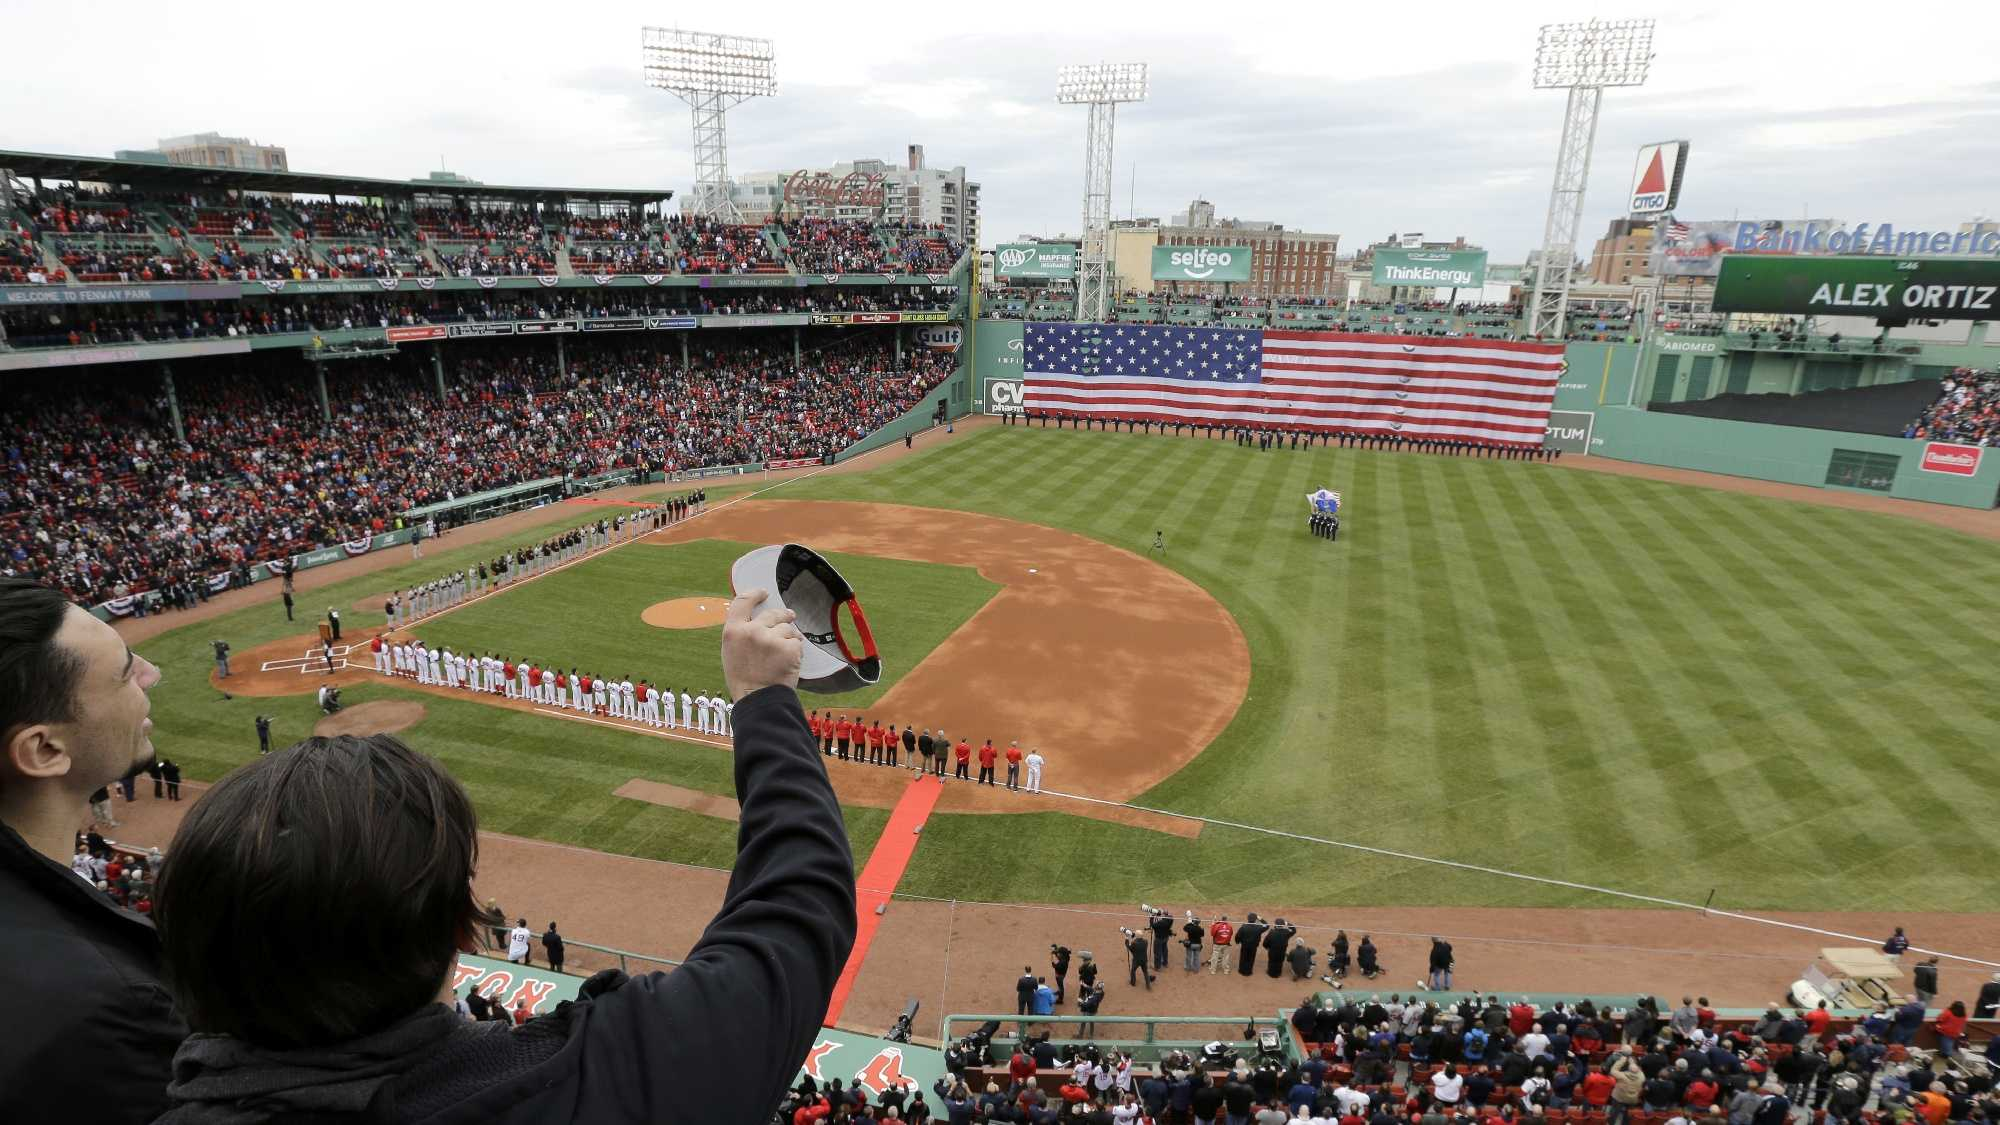 Fans cheer and wave at the conclusion of the singing of the national anthem before the home opener baseball game between the Boston Red Sox and the Baltimore Orioles at Fenway Park, Monday, April 11, 2016, in Boston.